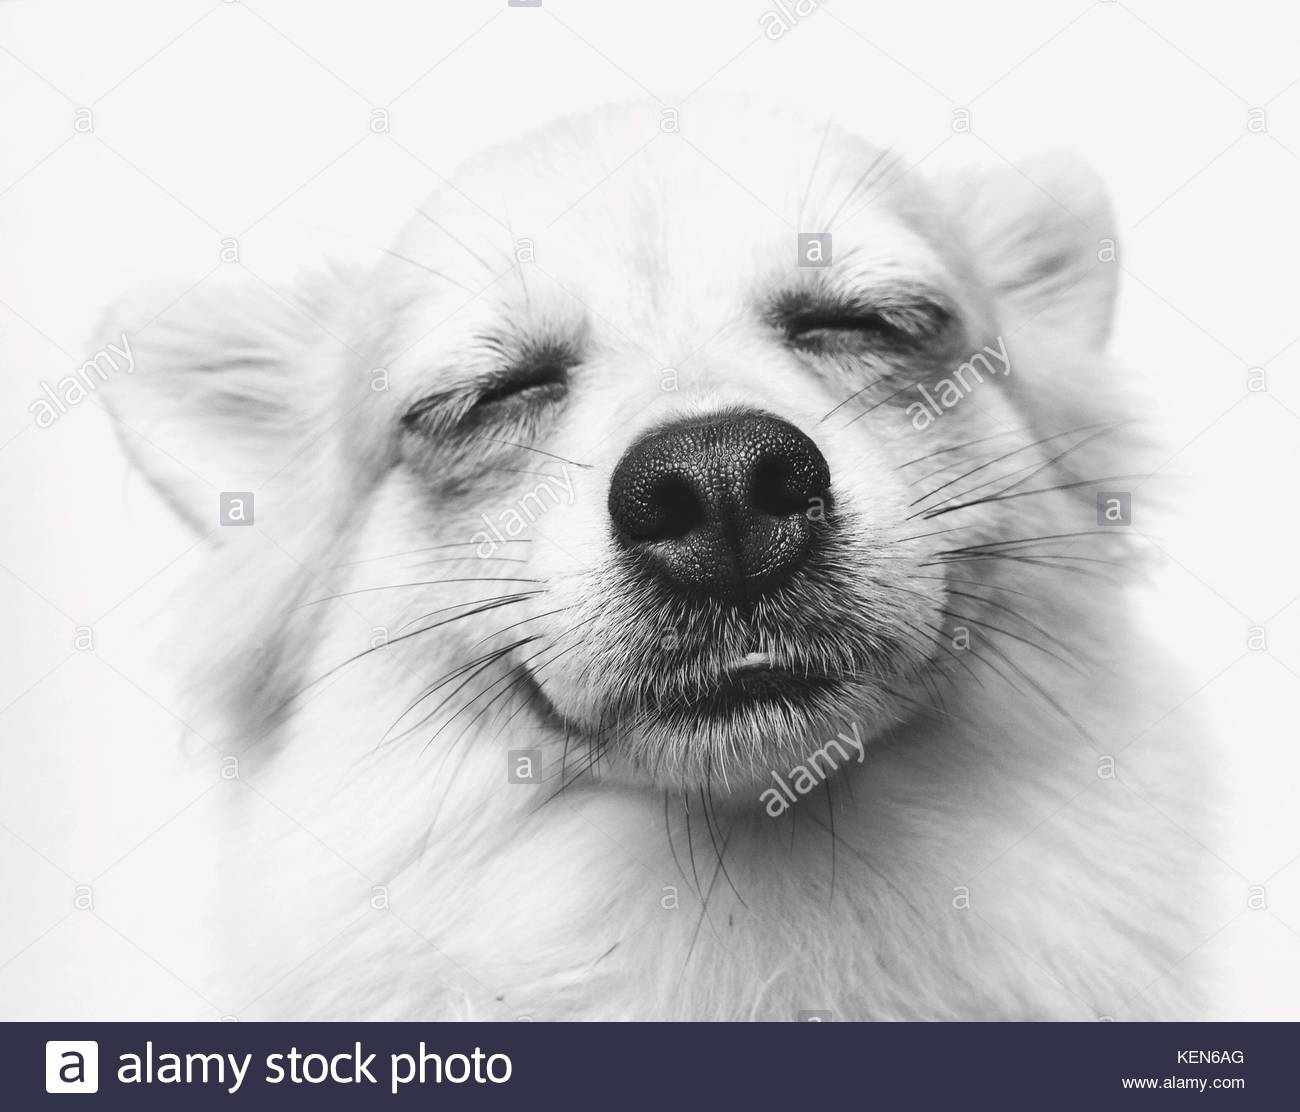 Chihuahua With Long Hair In Ears Stock Photos Chihuahua